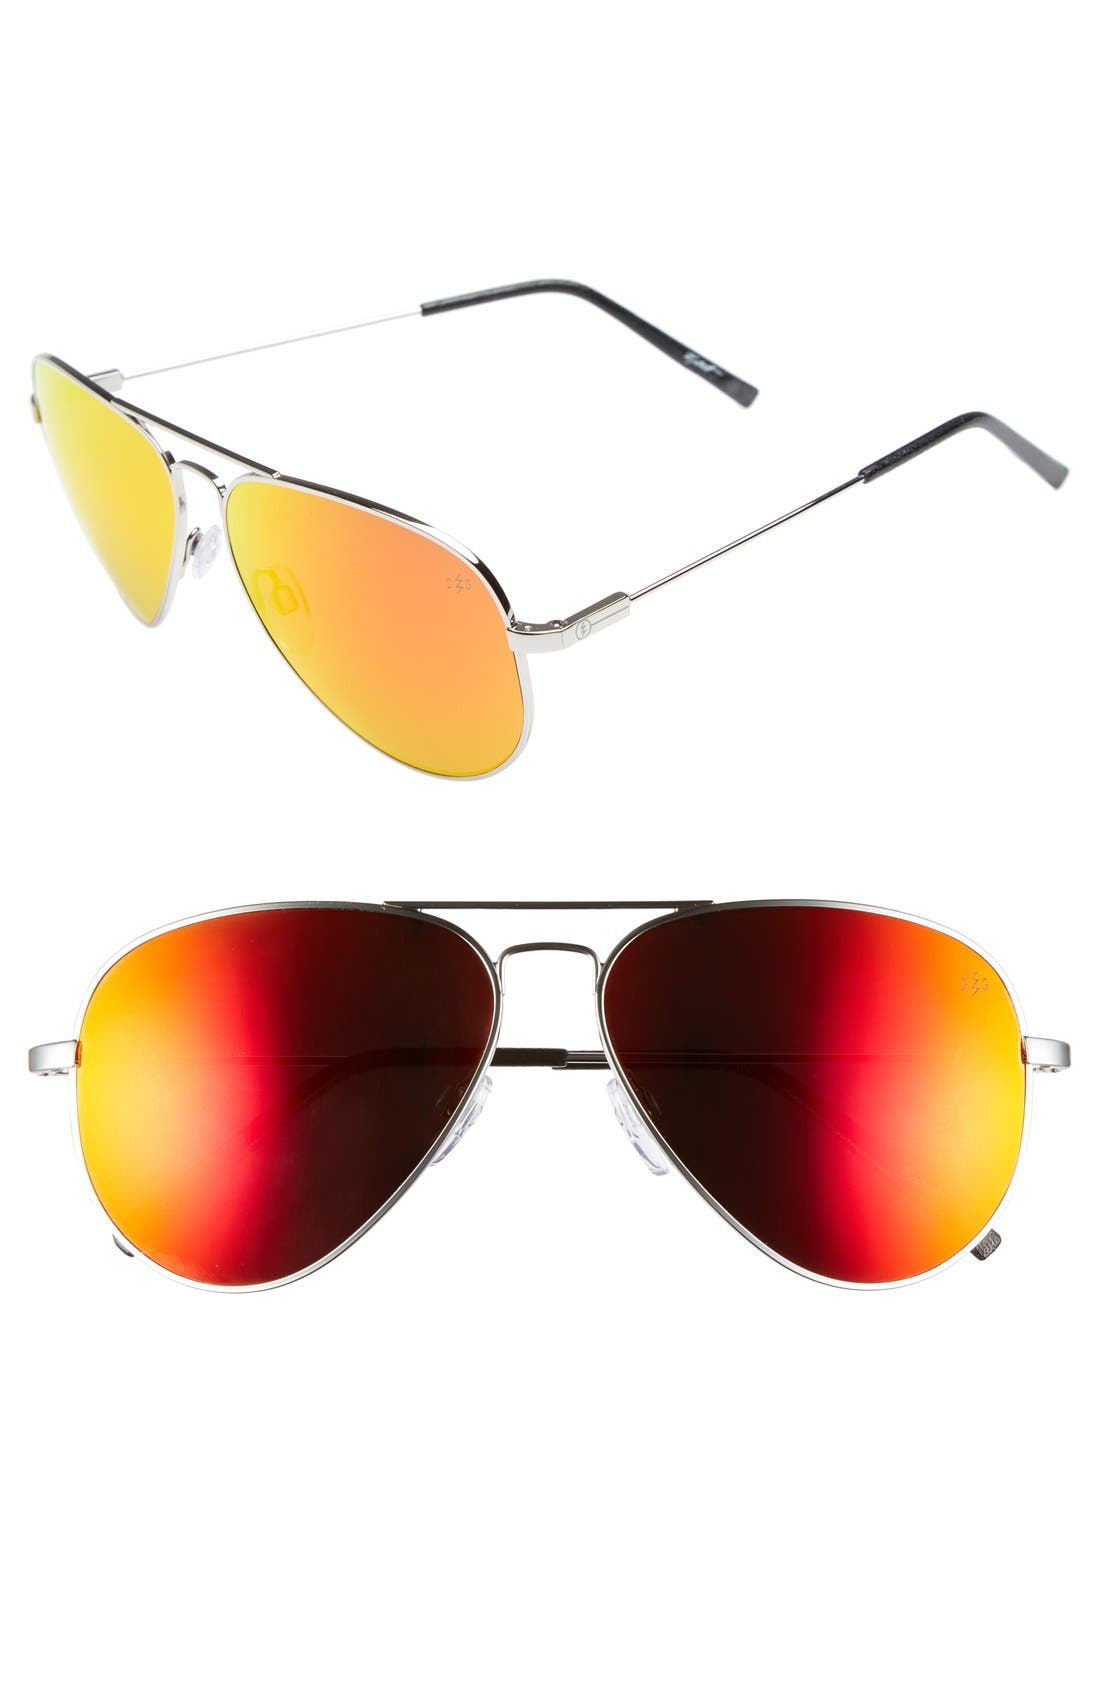 ELECTRIC AV1 Large 58mm Aviator Sunglasses